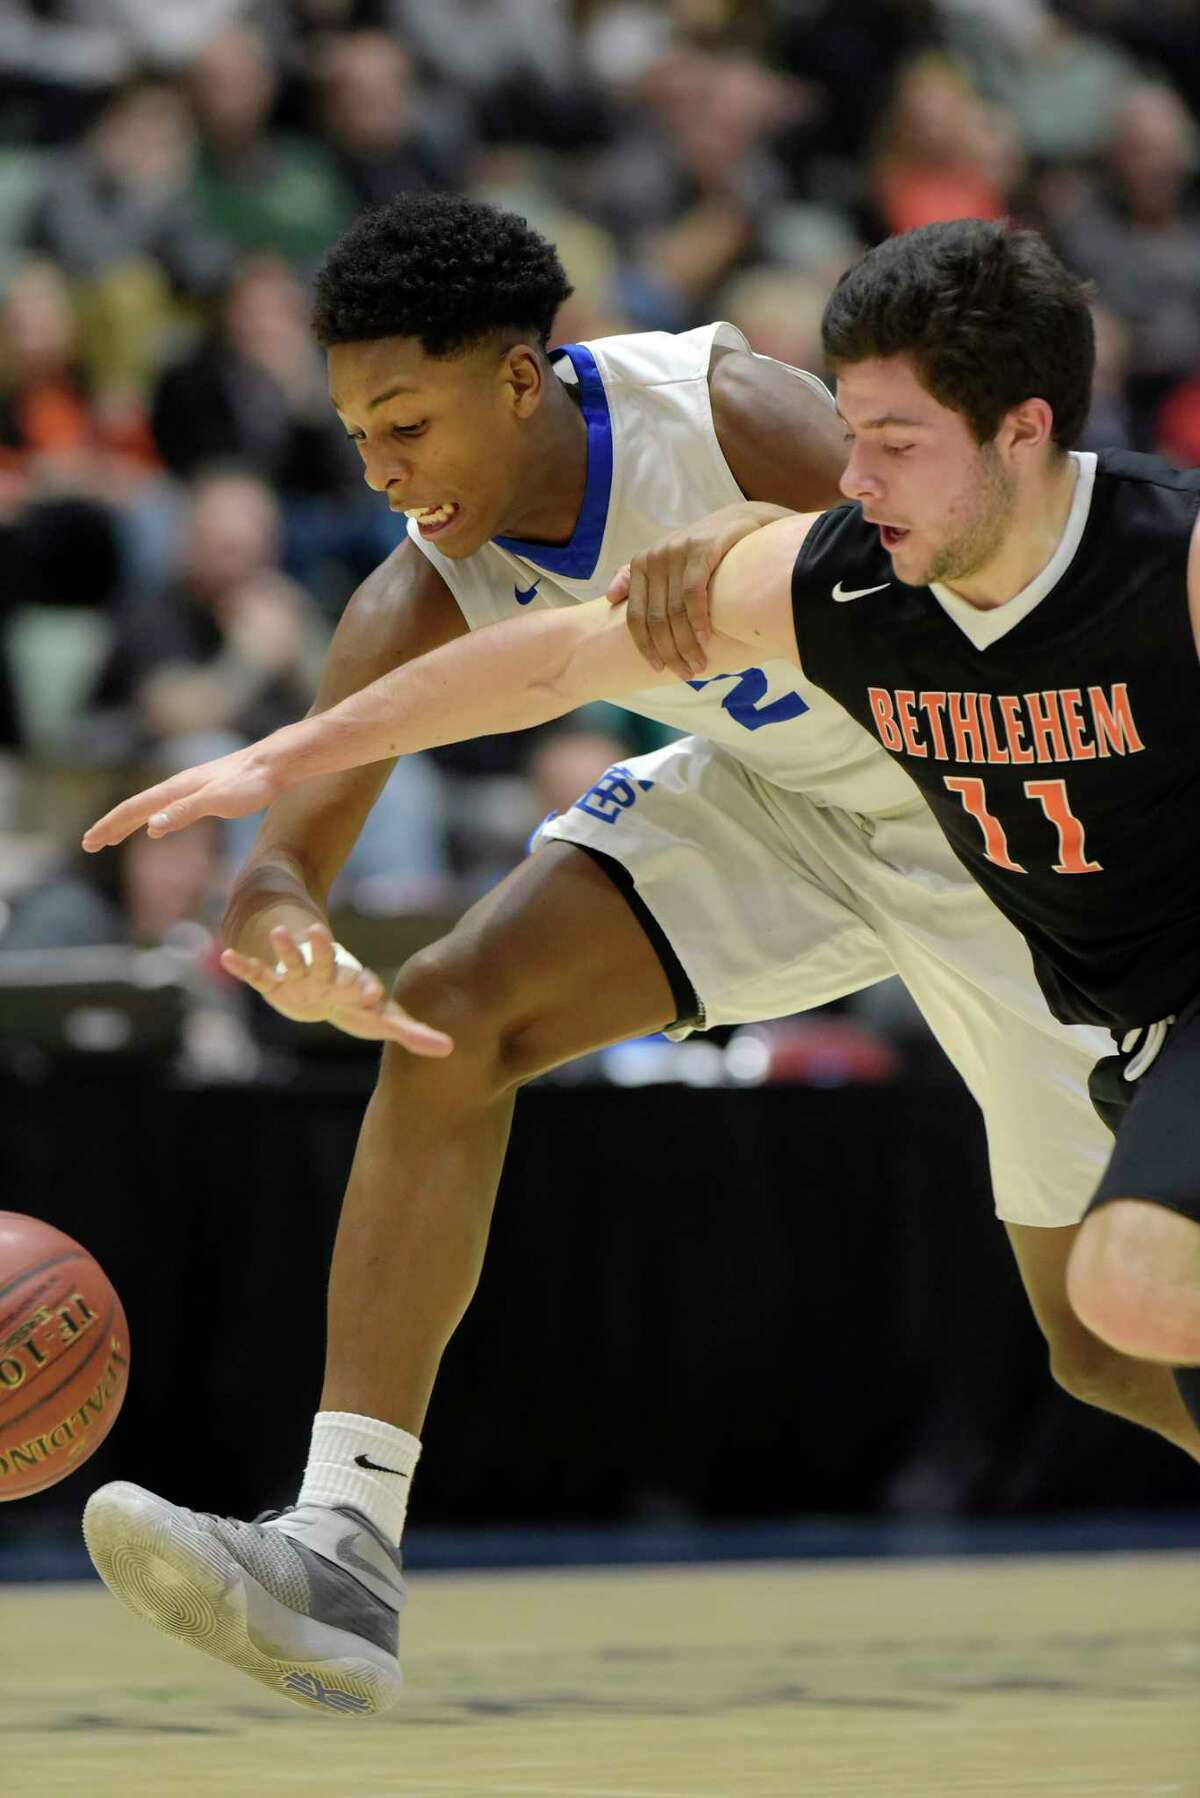 Jelani Wiggins of La Salle Institute, left, and Matthew Riker of Bethlehem battle for a loose ball during their Class AA semifinal game at the Glens Falls Civic Center on Tuesday, Feb. 28, 2017, in Glens Falls, N.Y. (Paul Buckowski / Times Union)